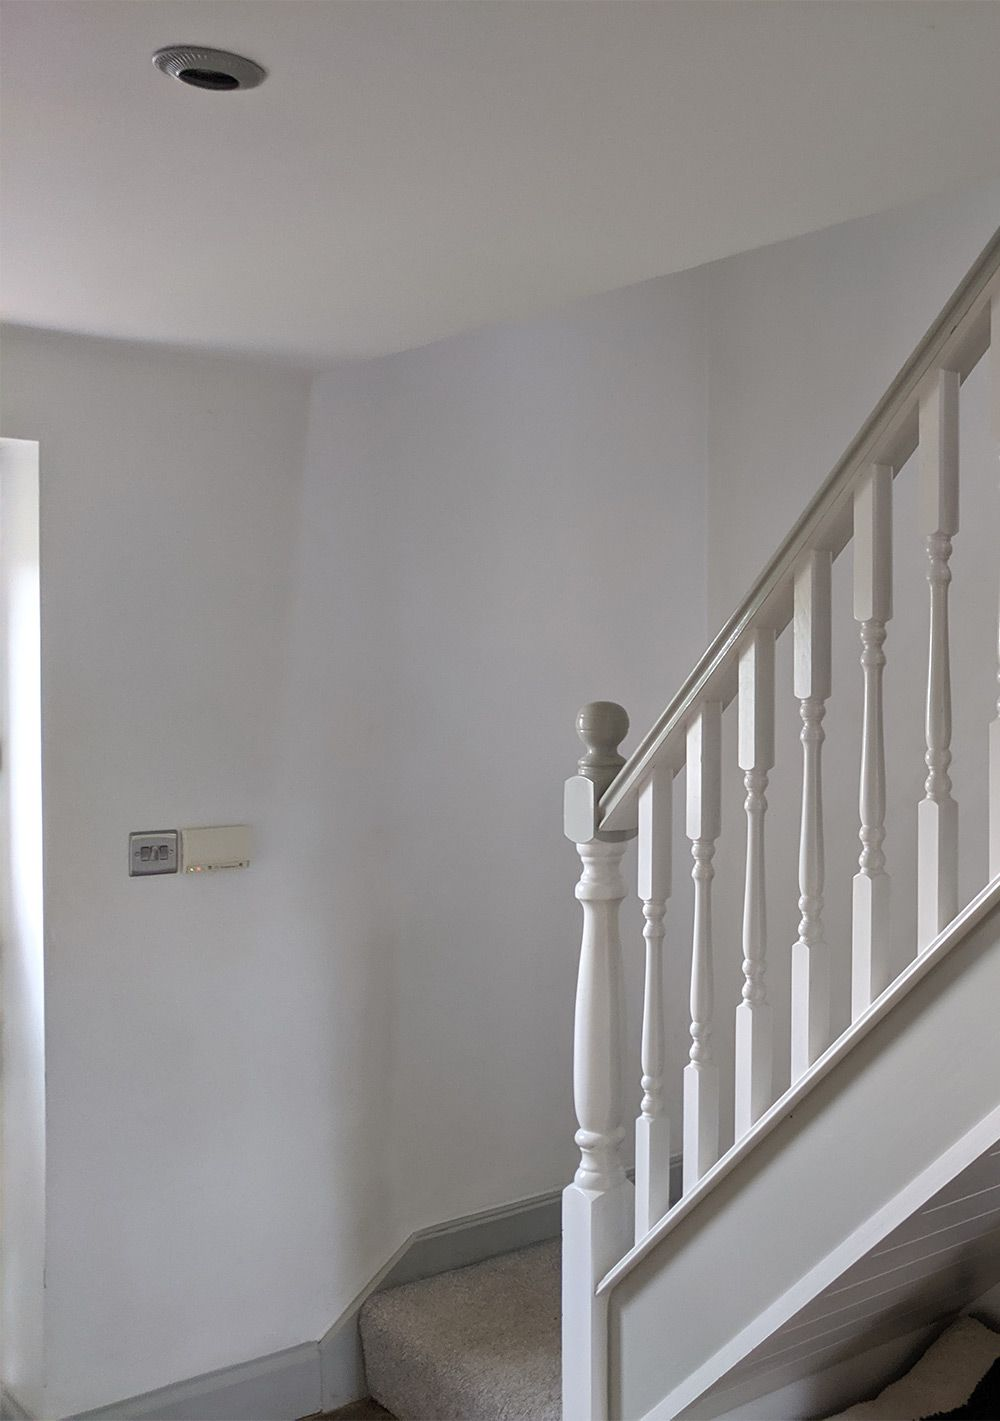 The area was bare before with white painted walls and no decoration.